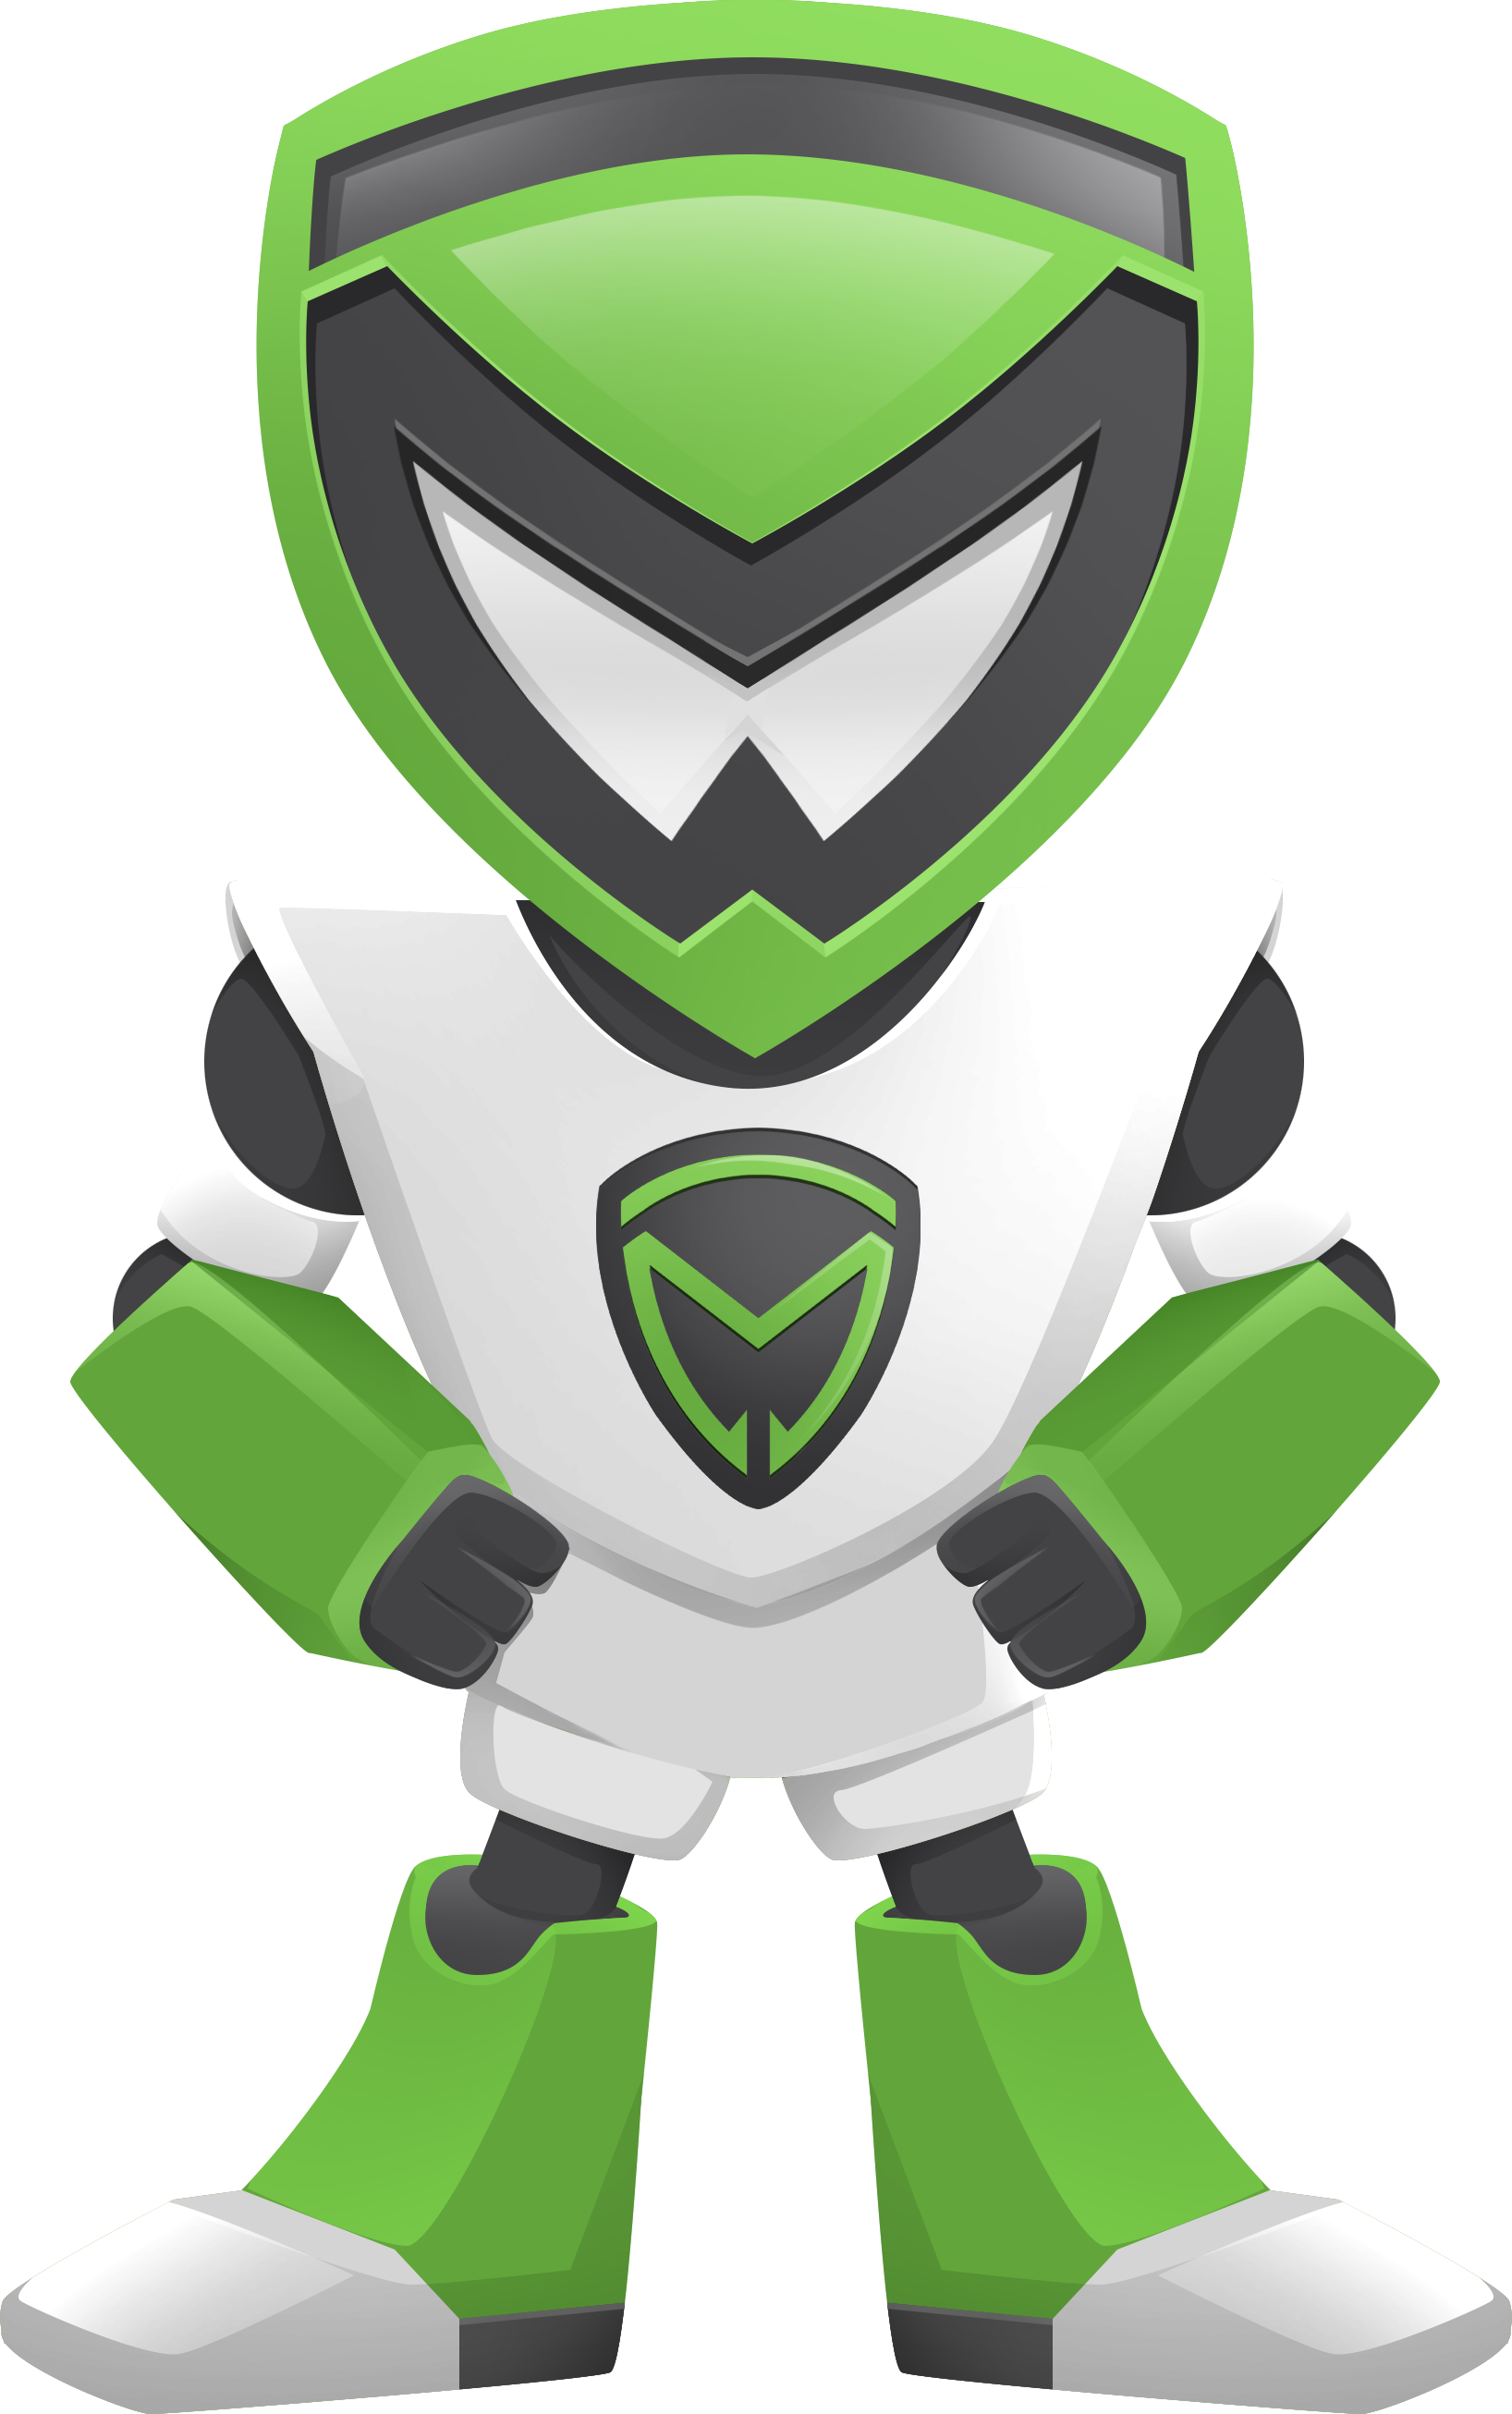 Free security chatbots for cryptocurrency investors — that